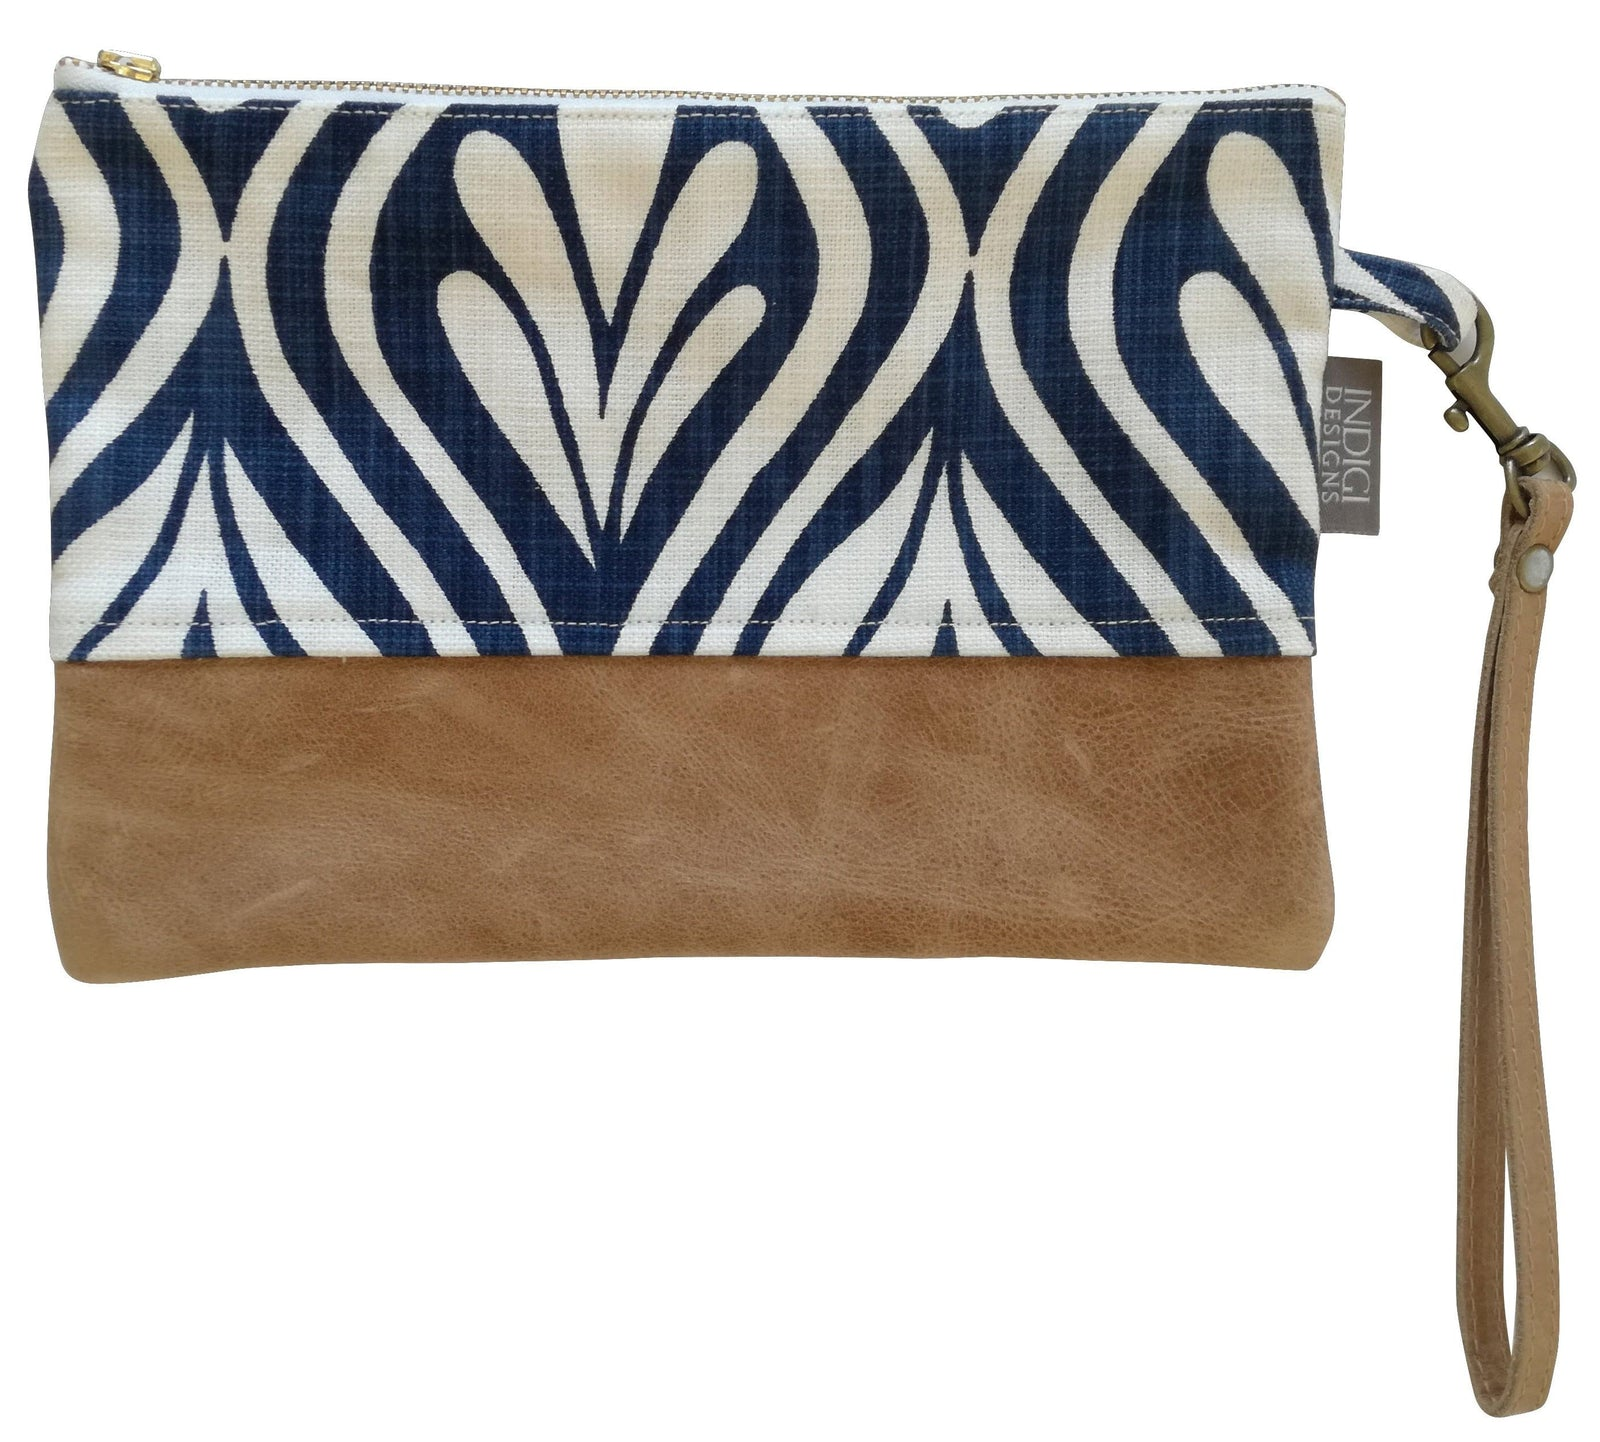 Henna Leaves Indigo with Leather Clutch Bag